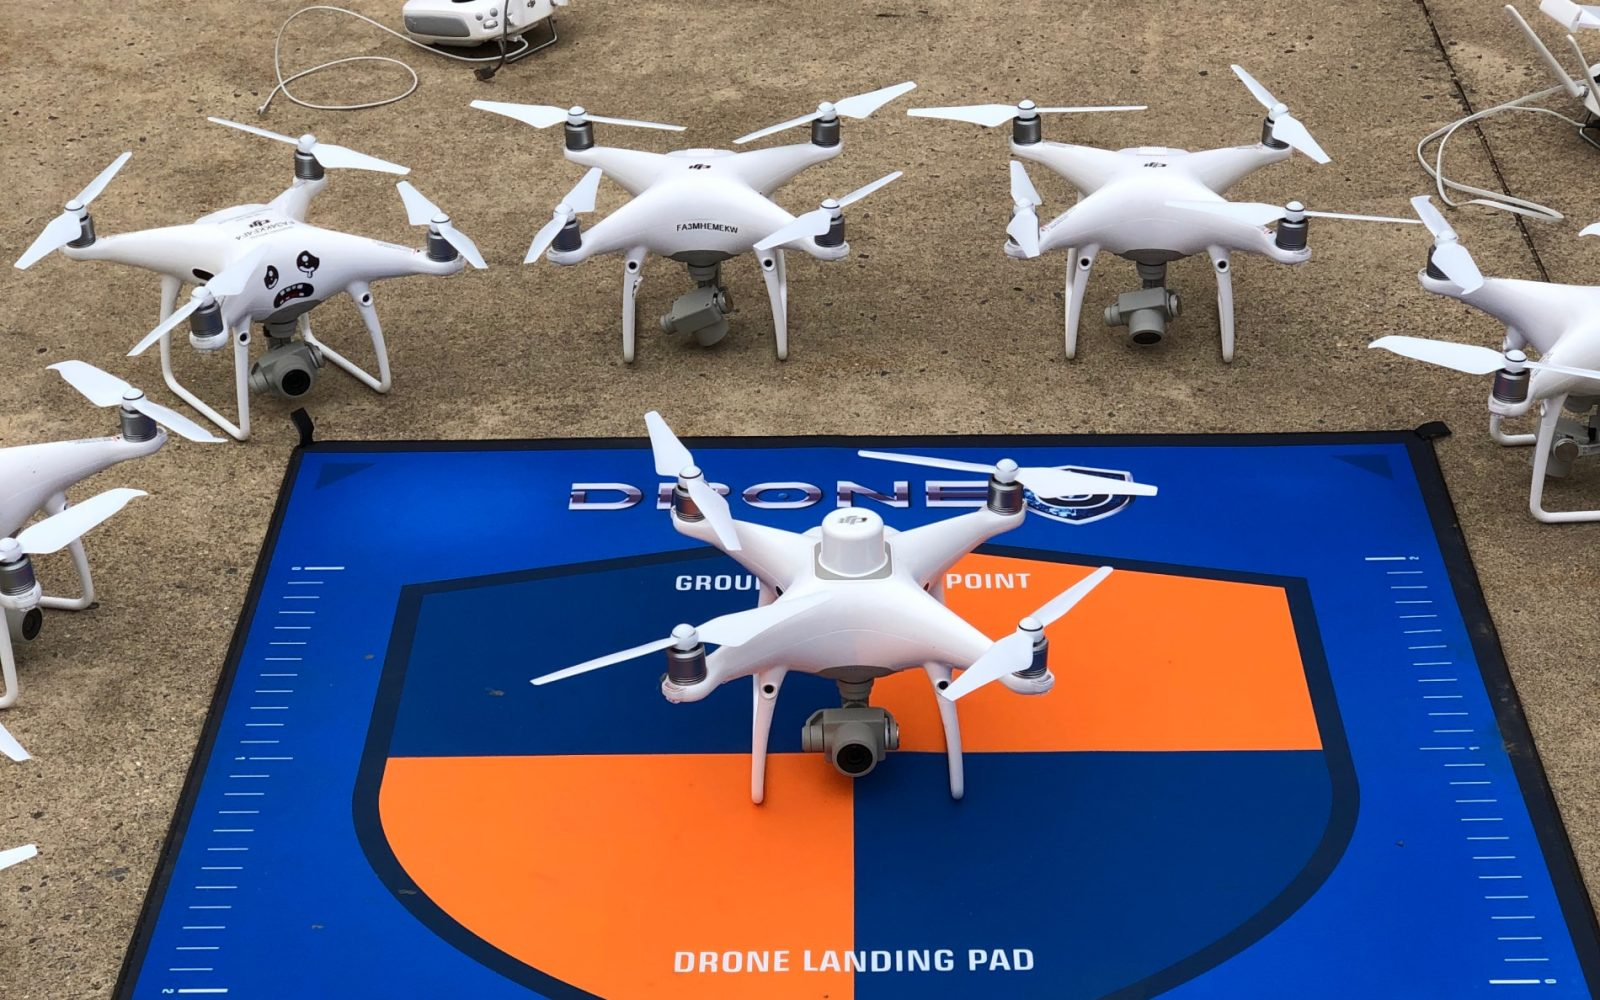 Drone mapping expert weighs in on Phantom 4 RTK firmware - DroneDJ on